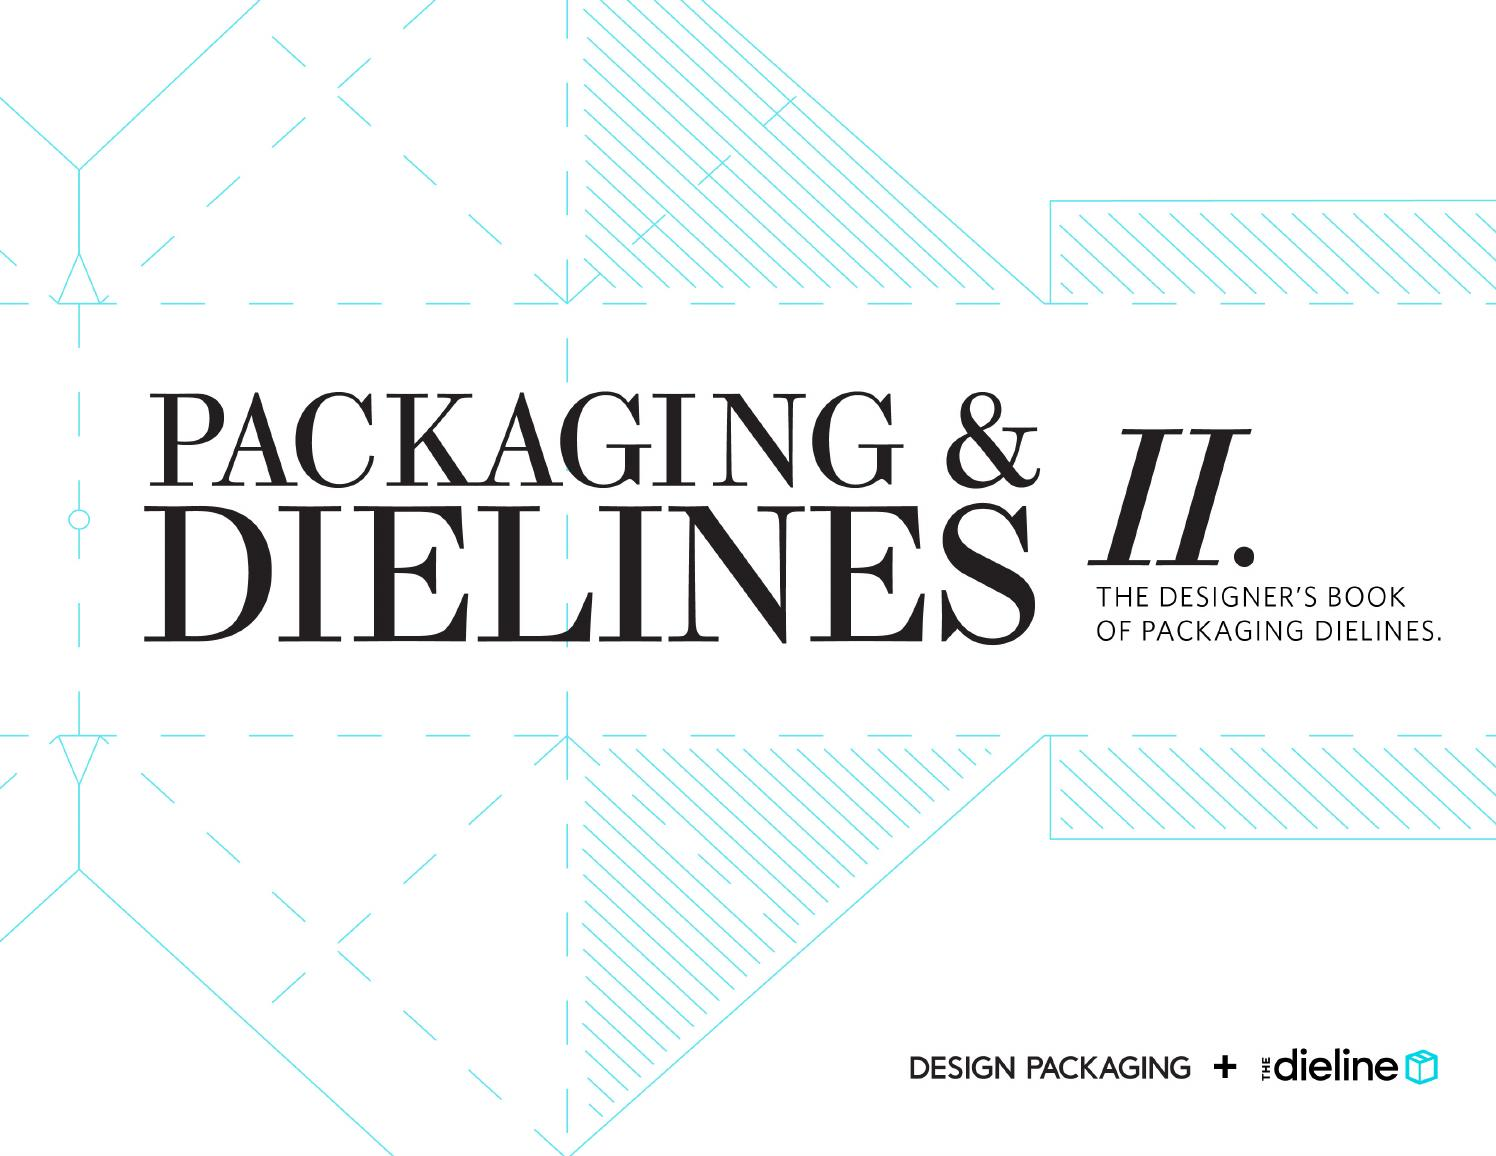 packaging dielines ii the designer s book of packaging dielines